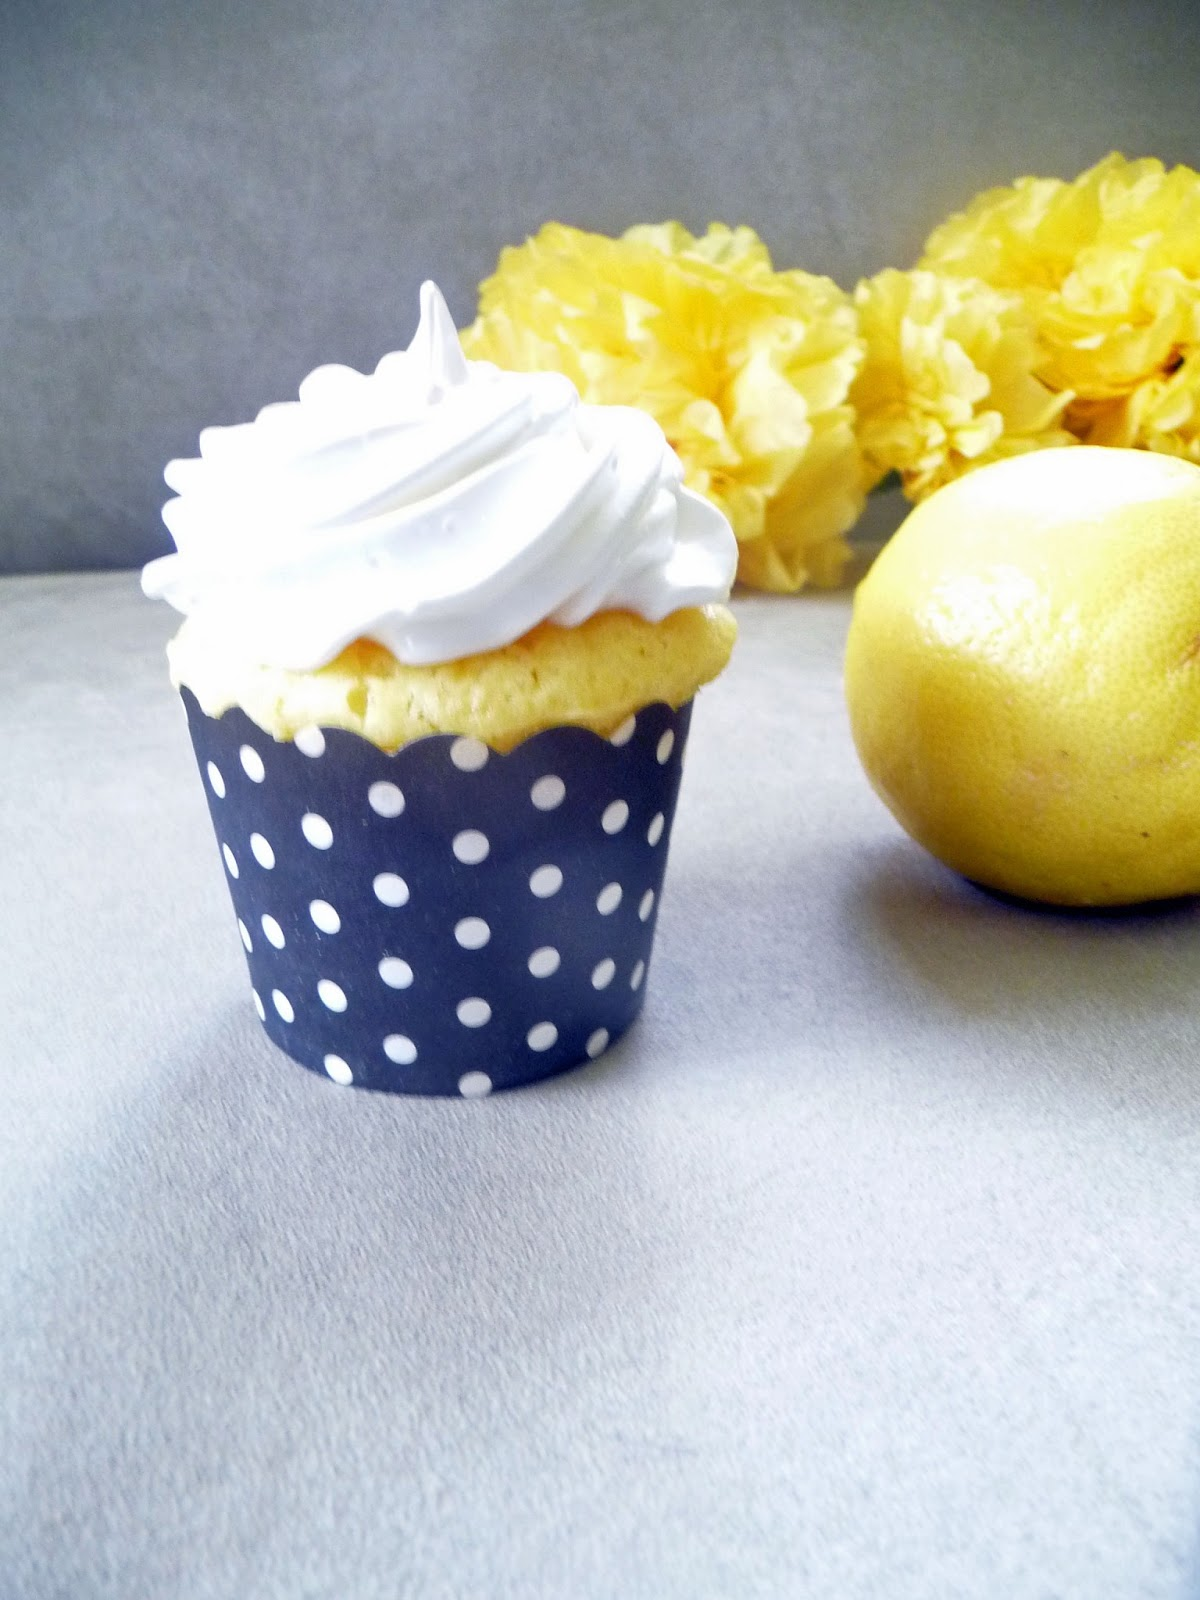 Life Tastes Good: Lemon Cupcakes with Cream Cheese Frosting